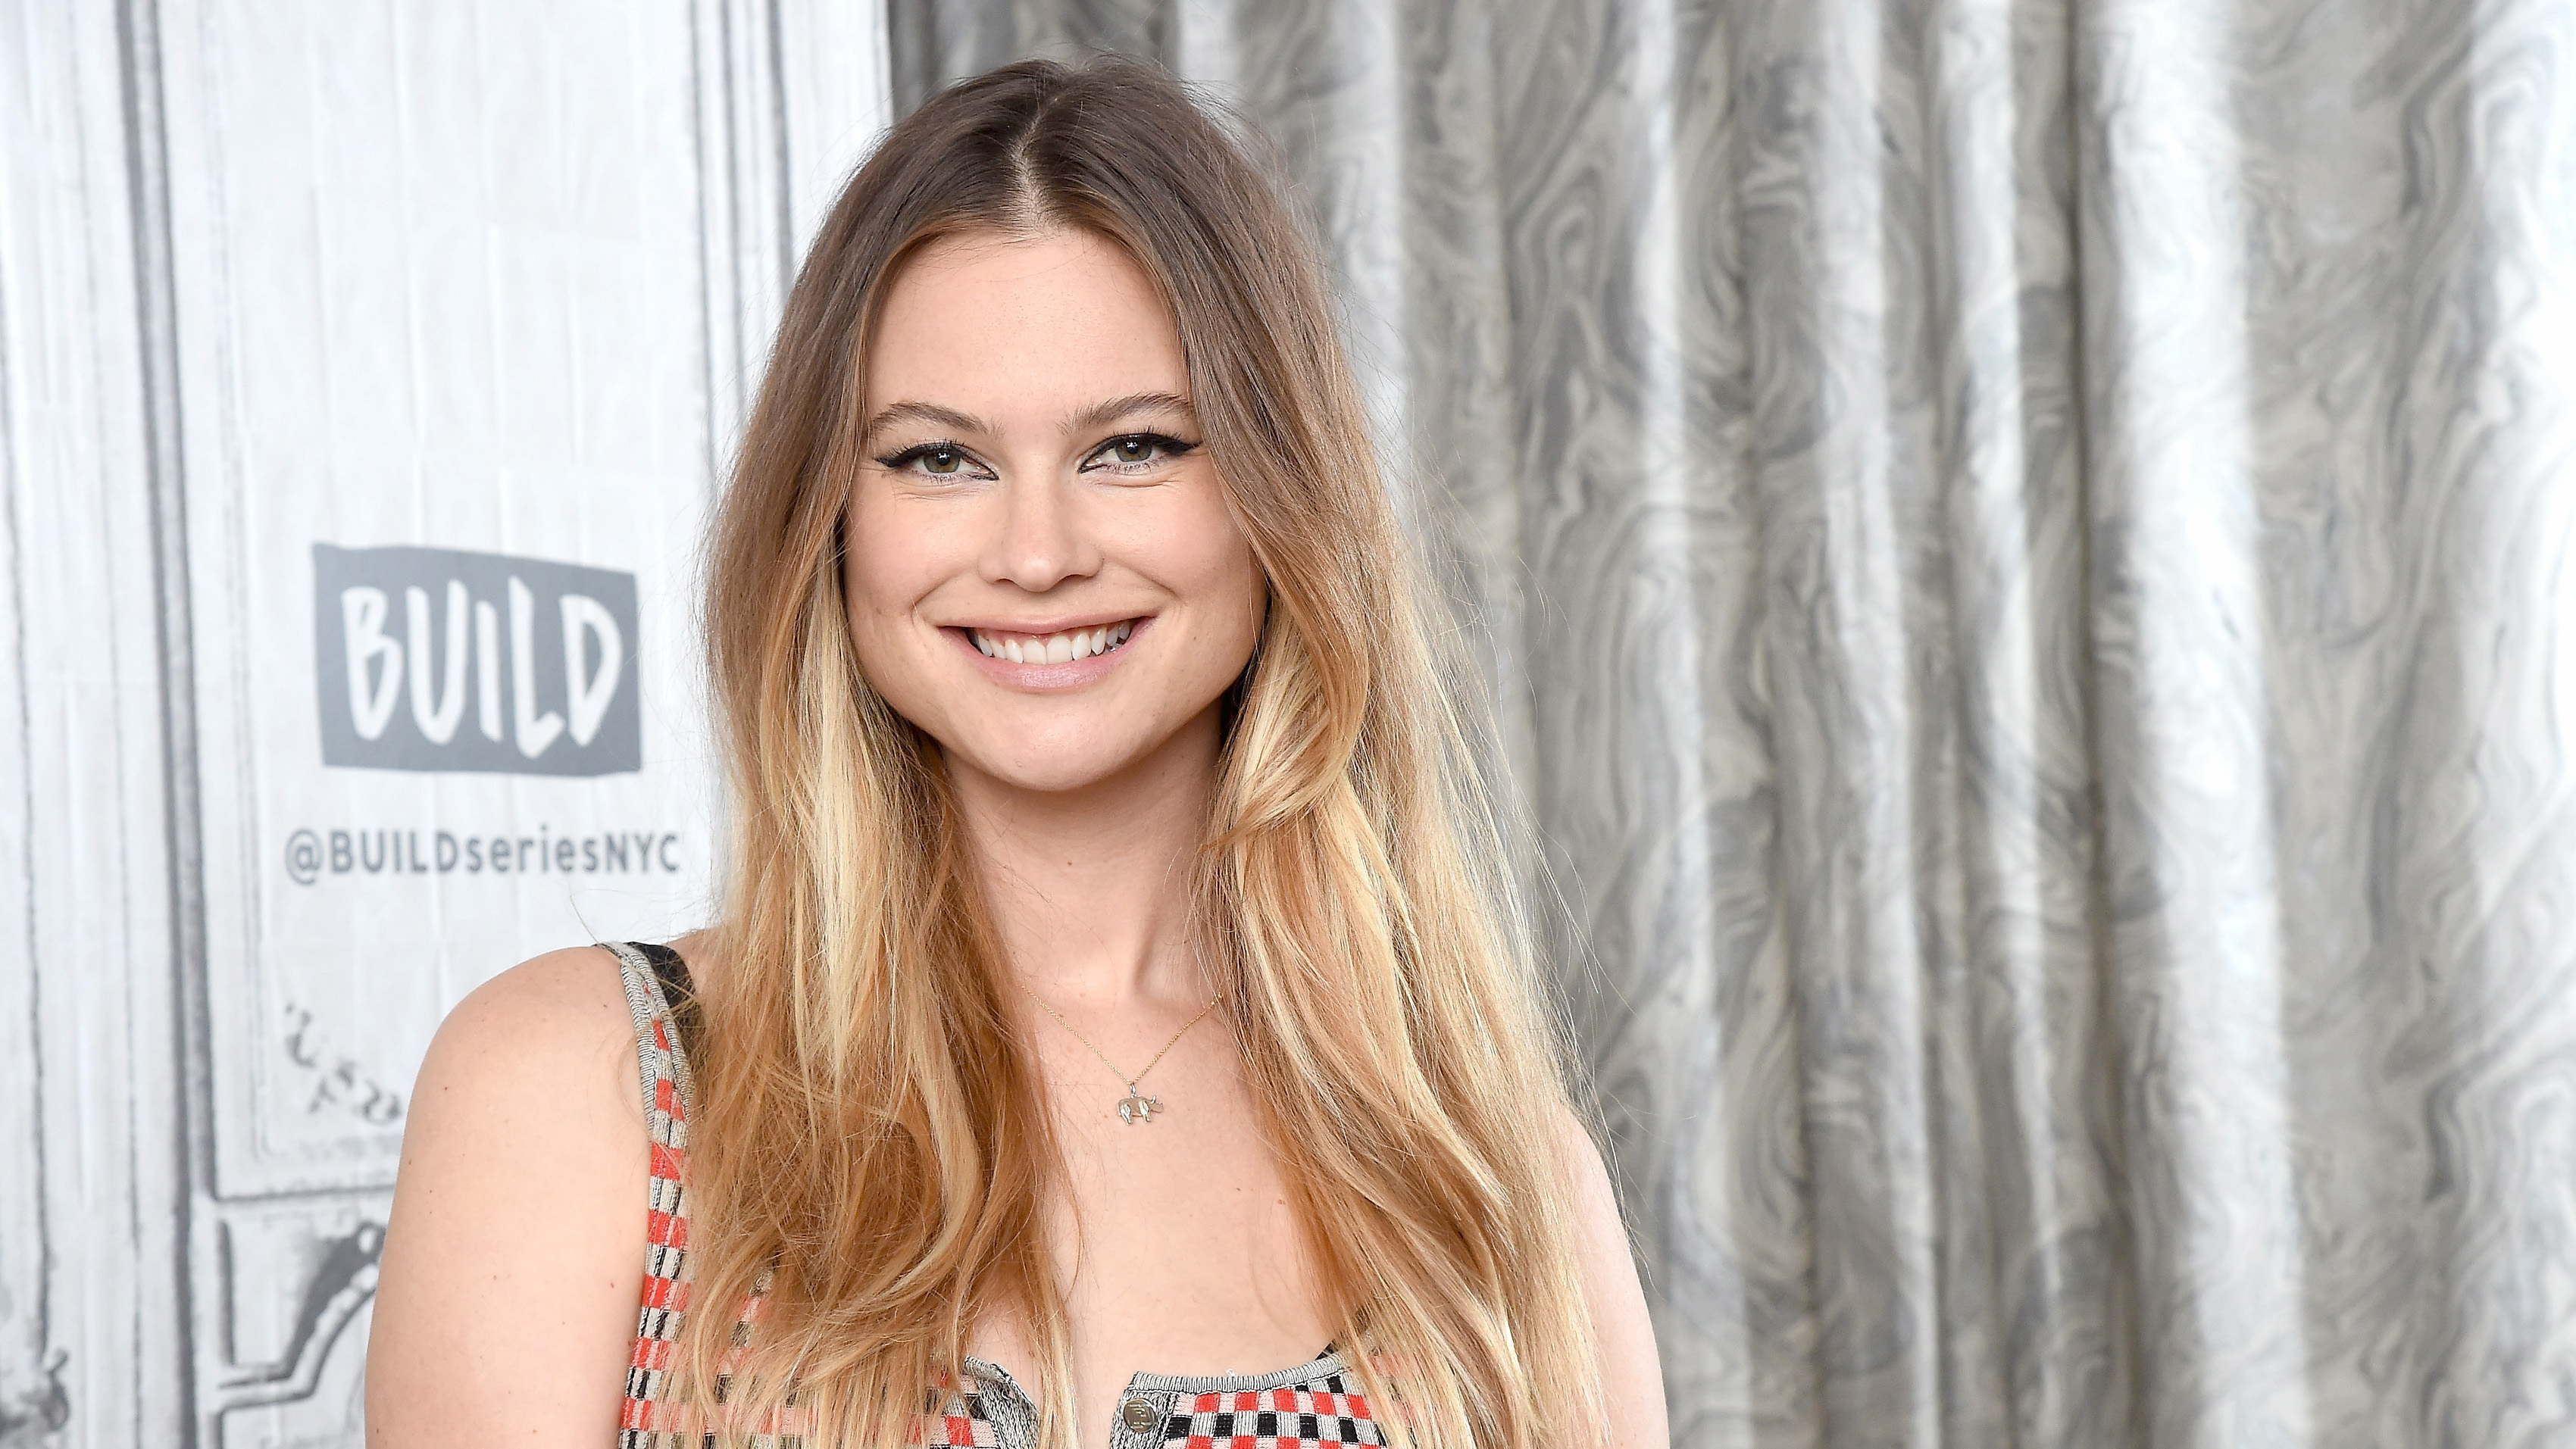 Behati Prinsloo shares rare photo of daughters on social media